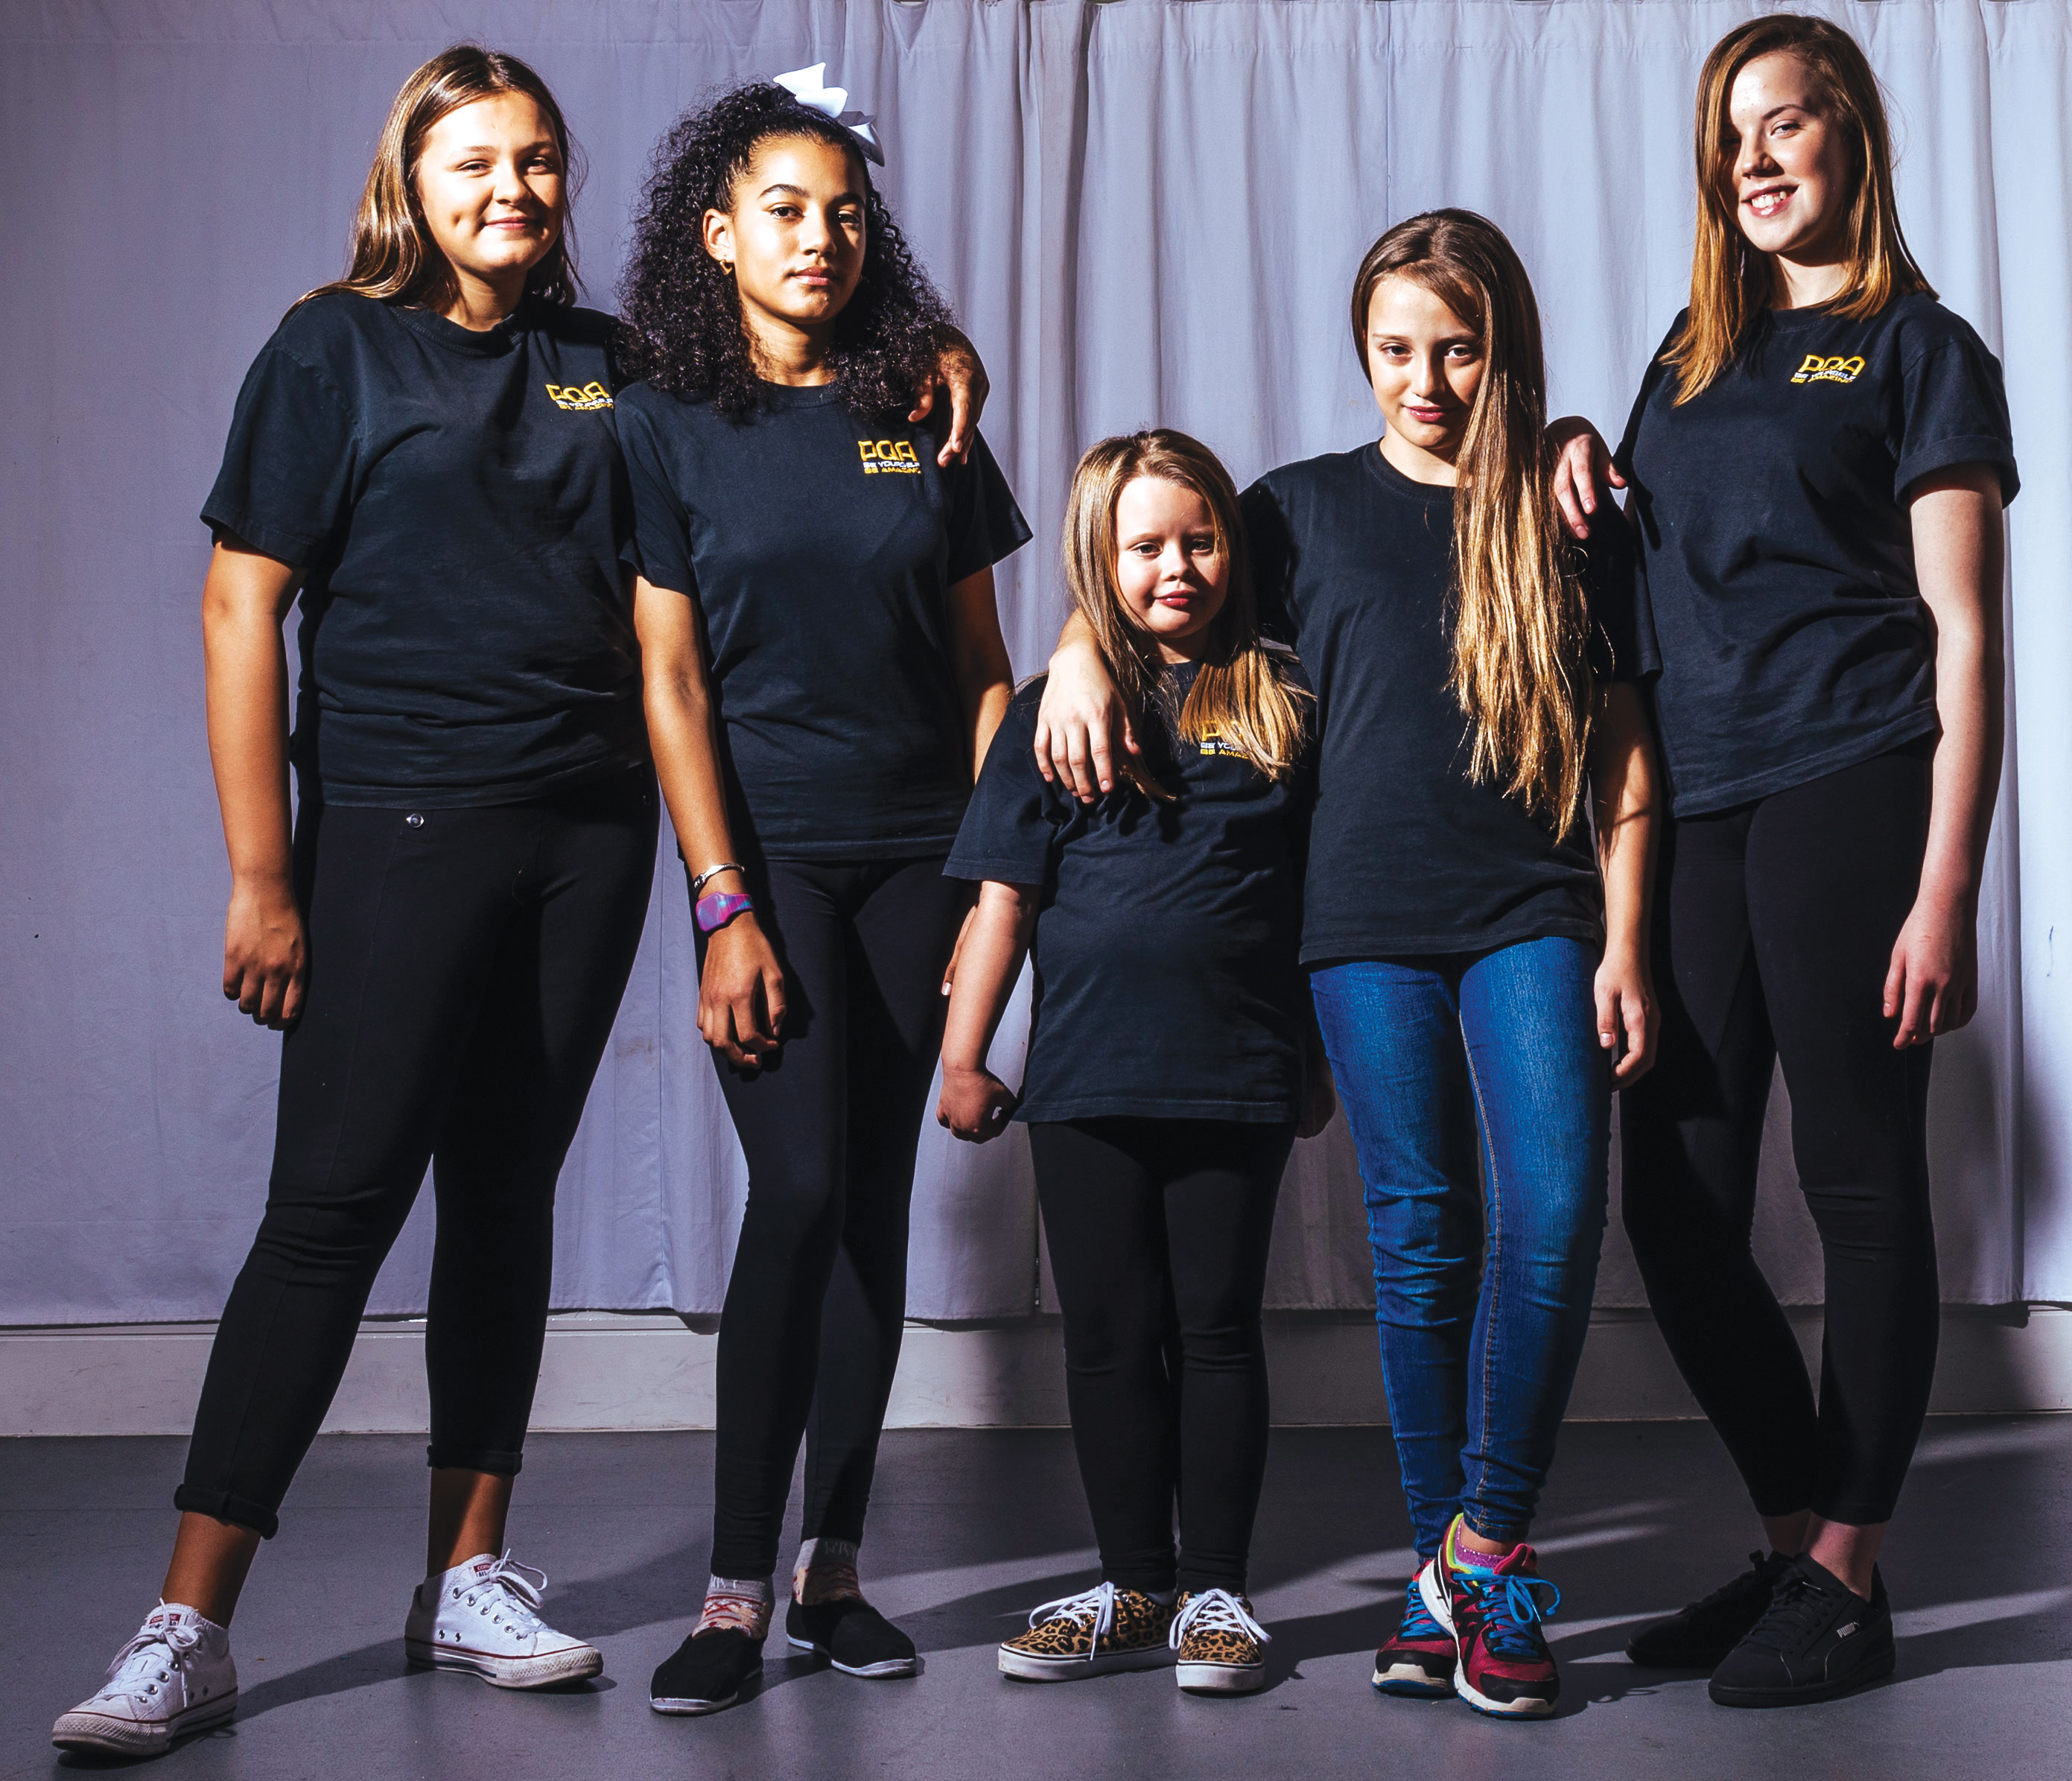 Isobel Inniss, Aimee Krubally, Ellie Loveridge, Kayleen Powis-Wallen and Shannon Bury. Photo: Alex Brenner